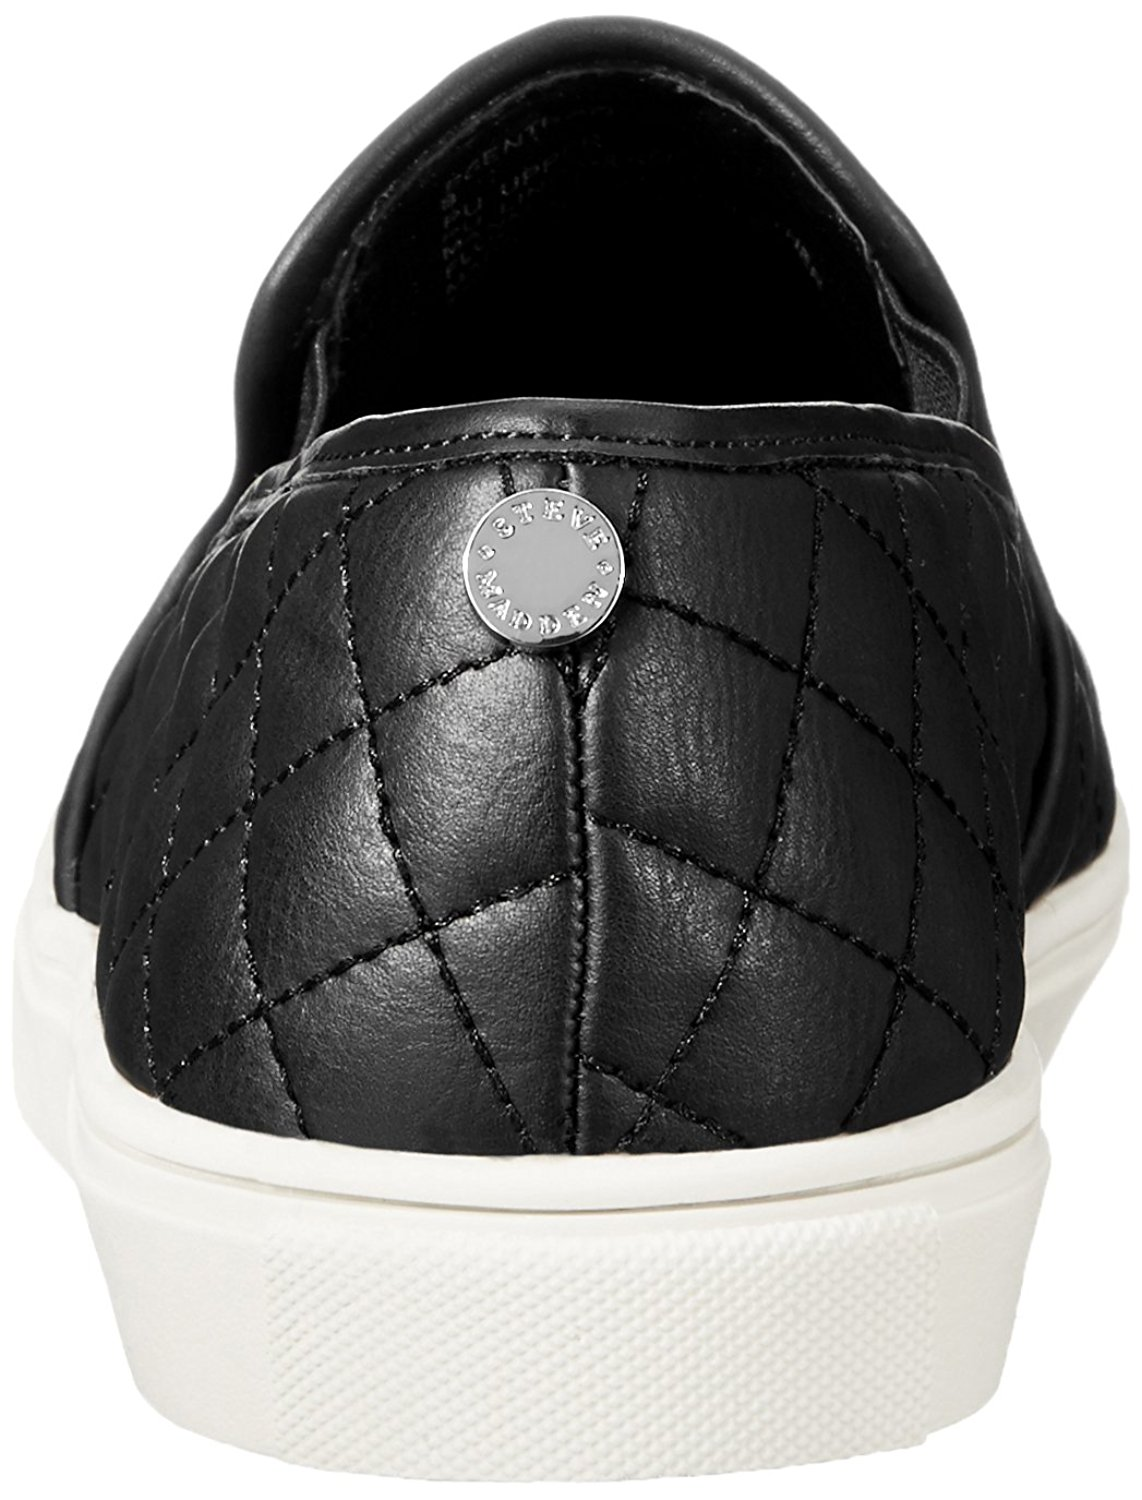 Steve Madden Womens Ecentrcq Low Top Slip On Fashion Sneakers 7a96b7d00f